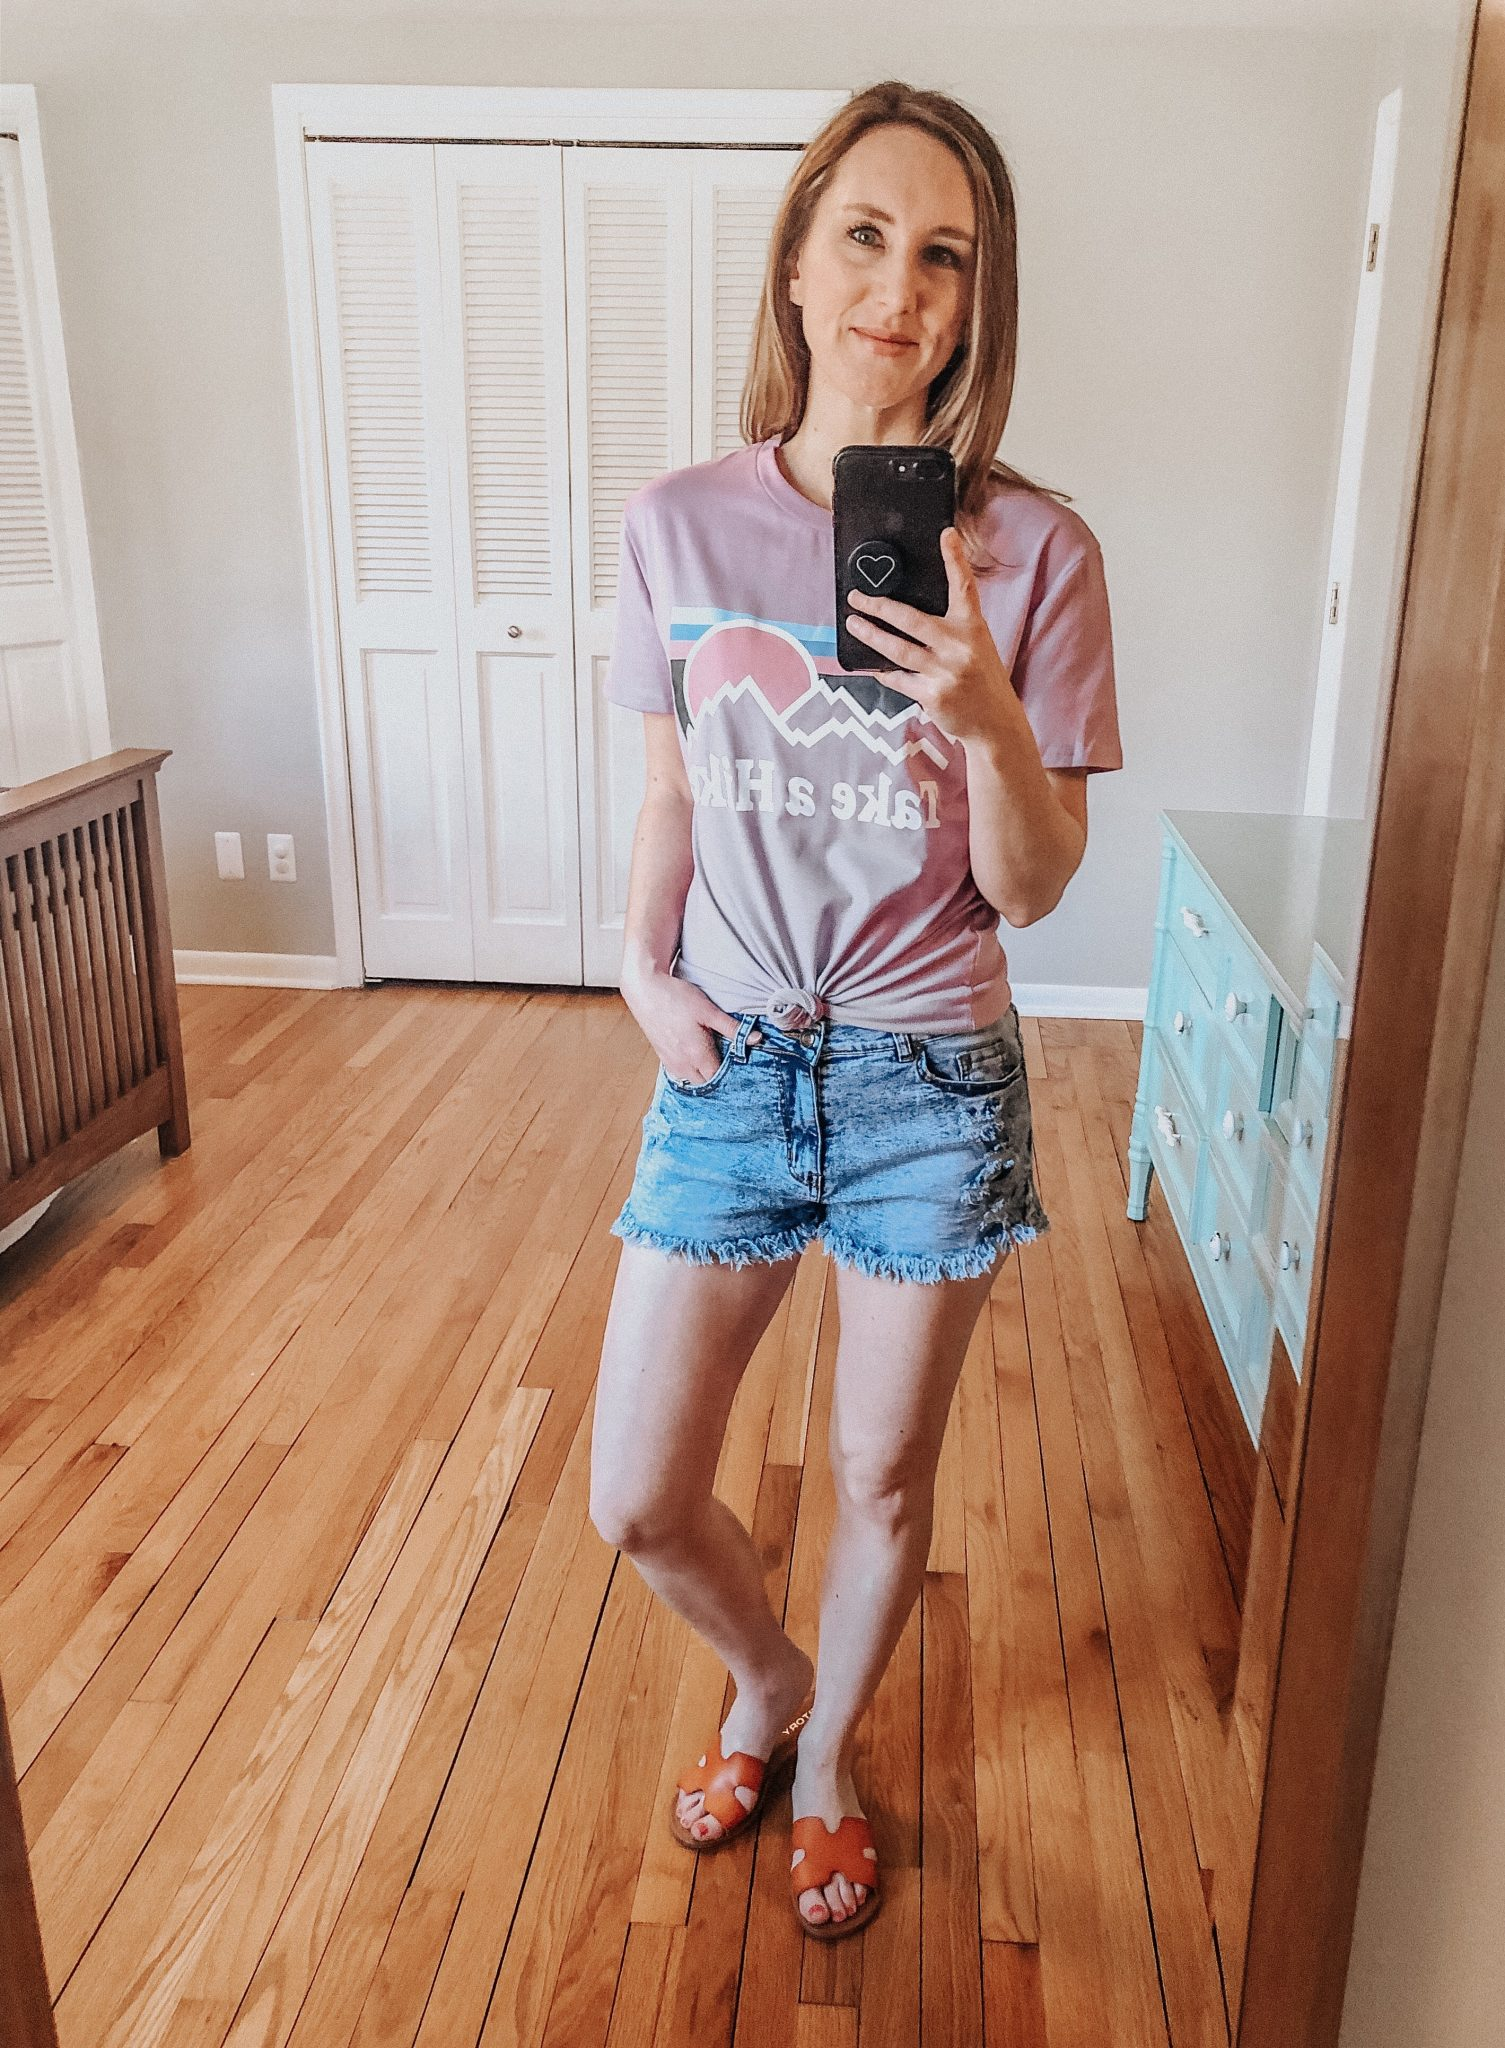 Spring Amazon Haul | Daily Splendor Life and Style Blog || denim shorts, tee, sandals, amazon prime, #springstyle #springfashion #summeroutfit #primefind #everydaystyle #momstyle